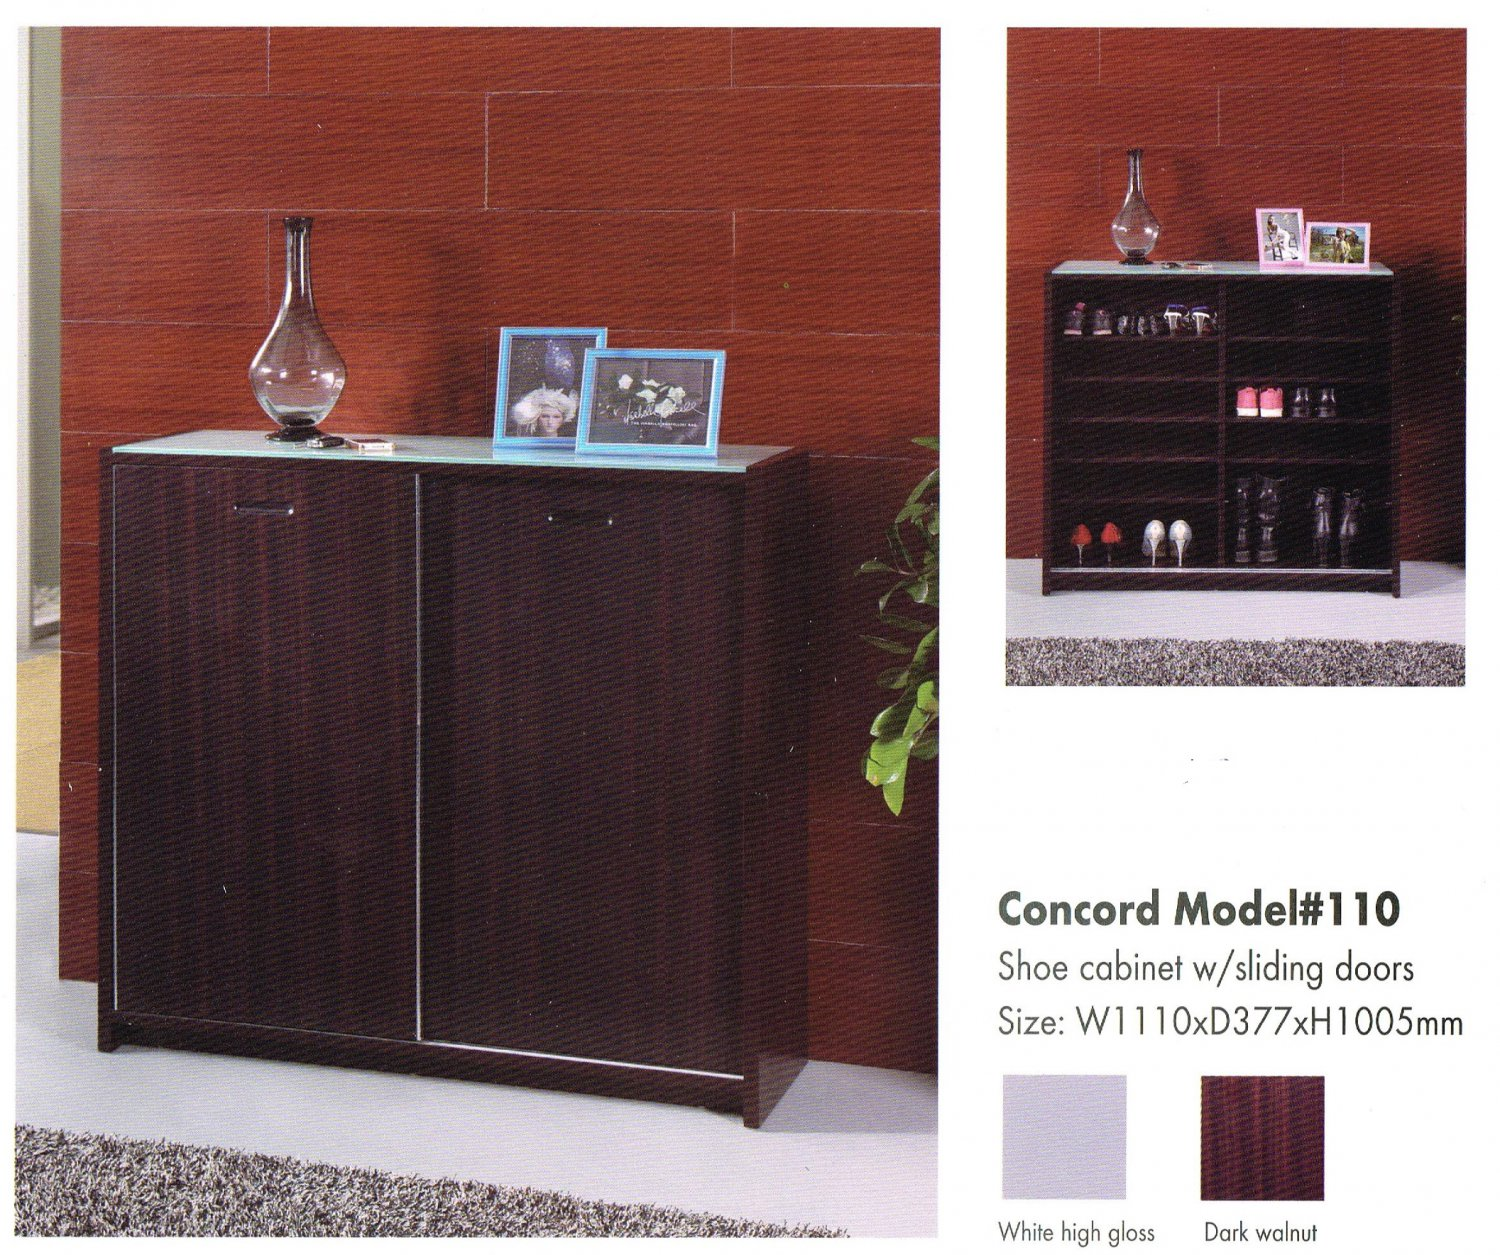 Concord Shoe Cabinet with Sliding Doors Model #110